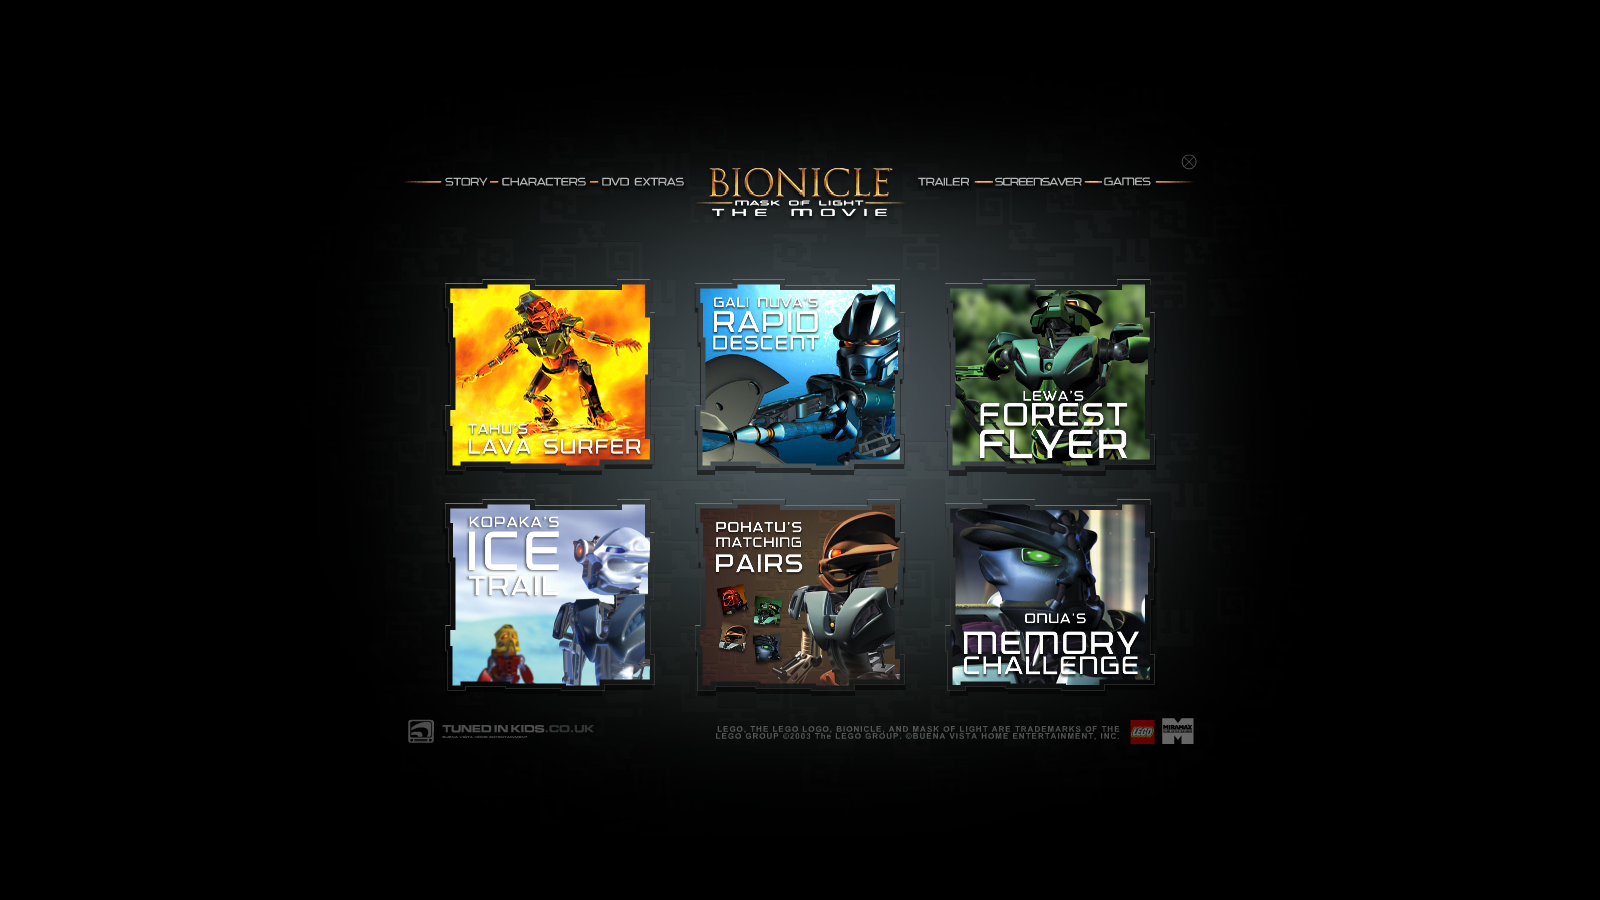 BIONICLE: Mask of Light Promo CD 0